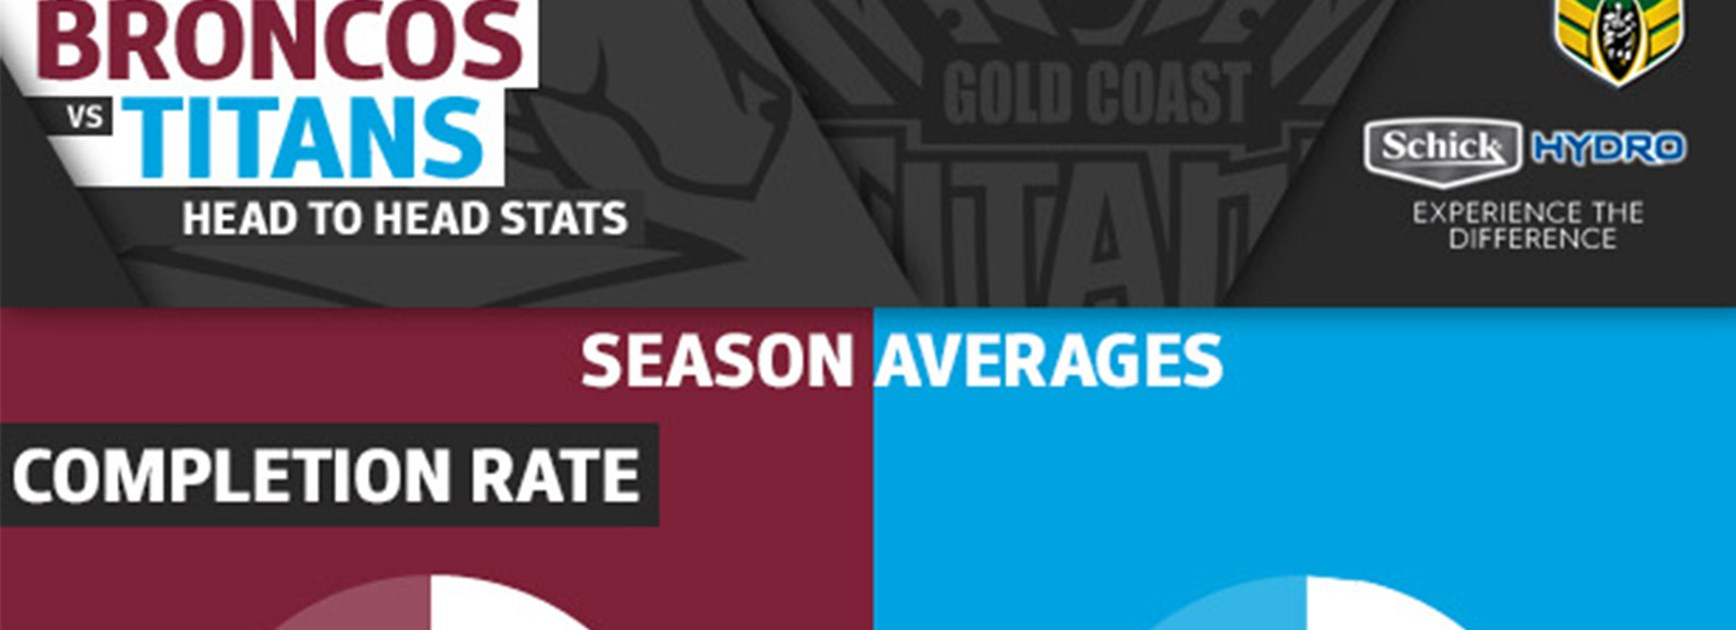 According to the Schick Hydro stats, not much will separate the Broncos and Titans in their elimination final.